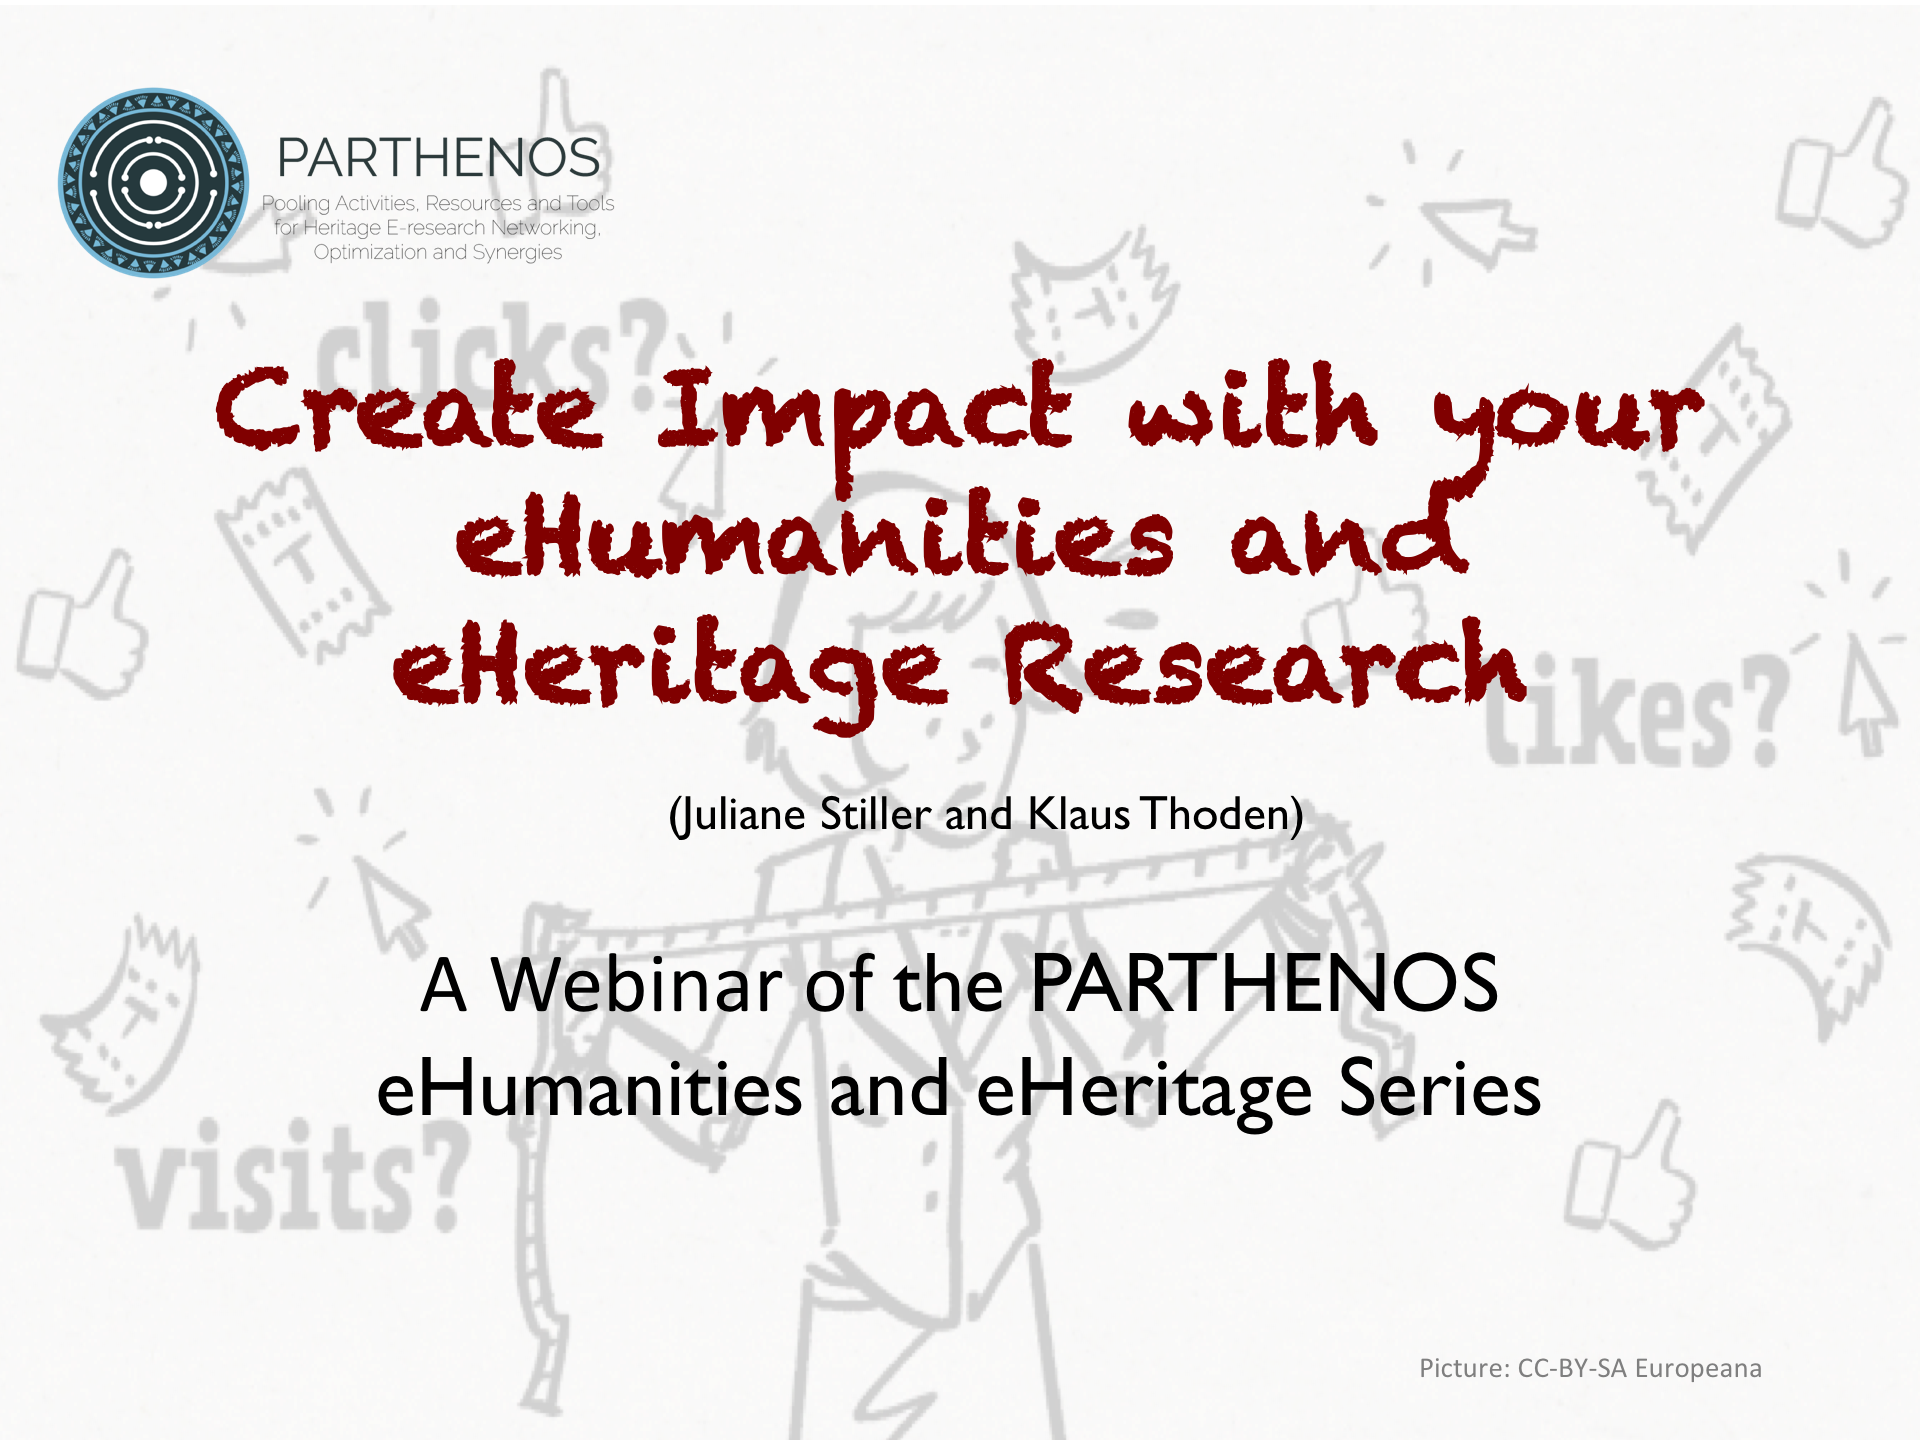 Create Impact with your eHumanities and eHeritage Research